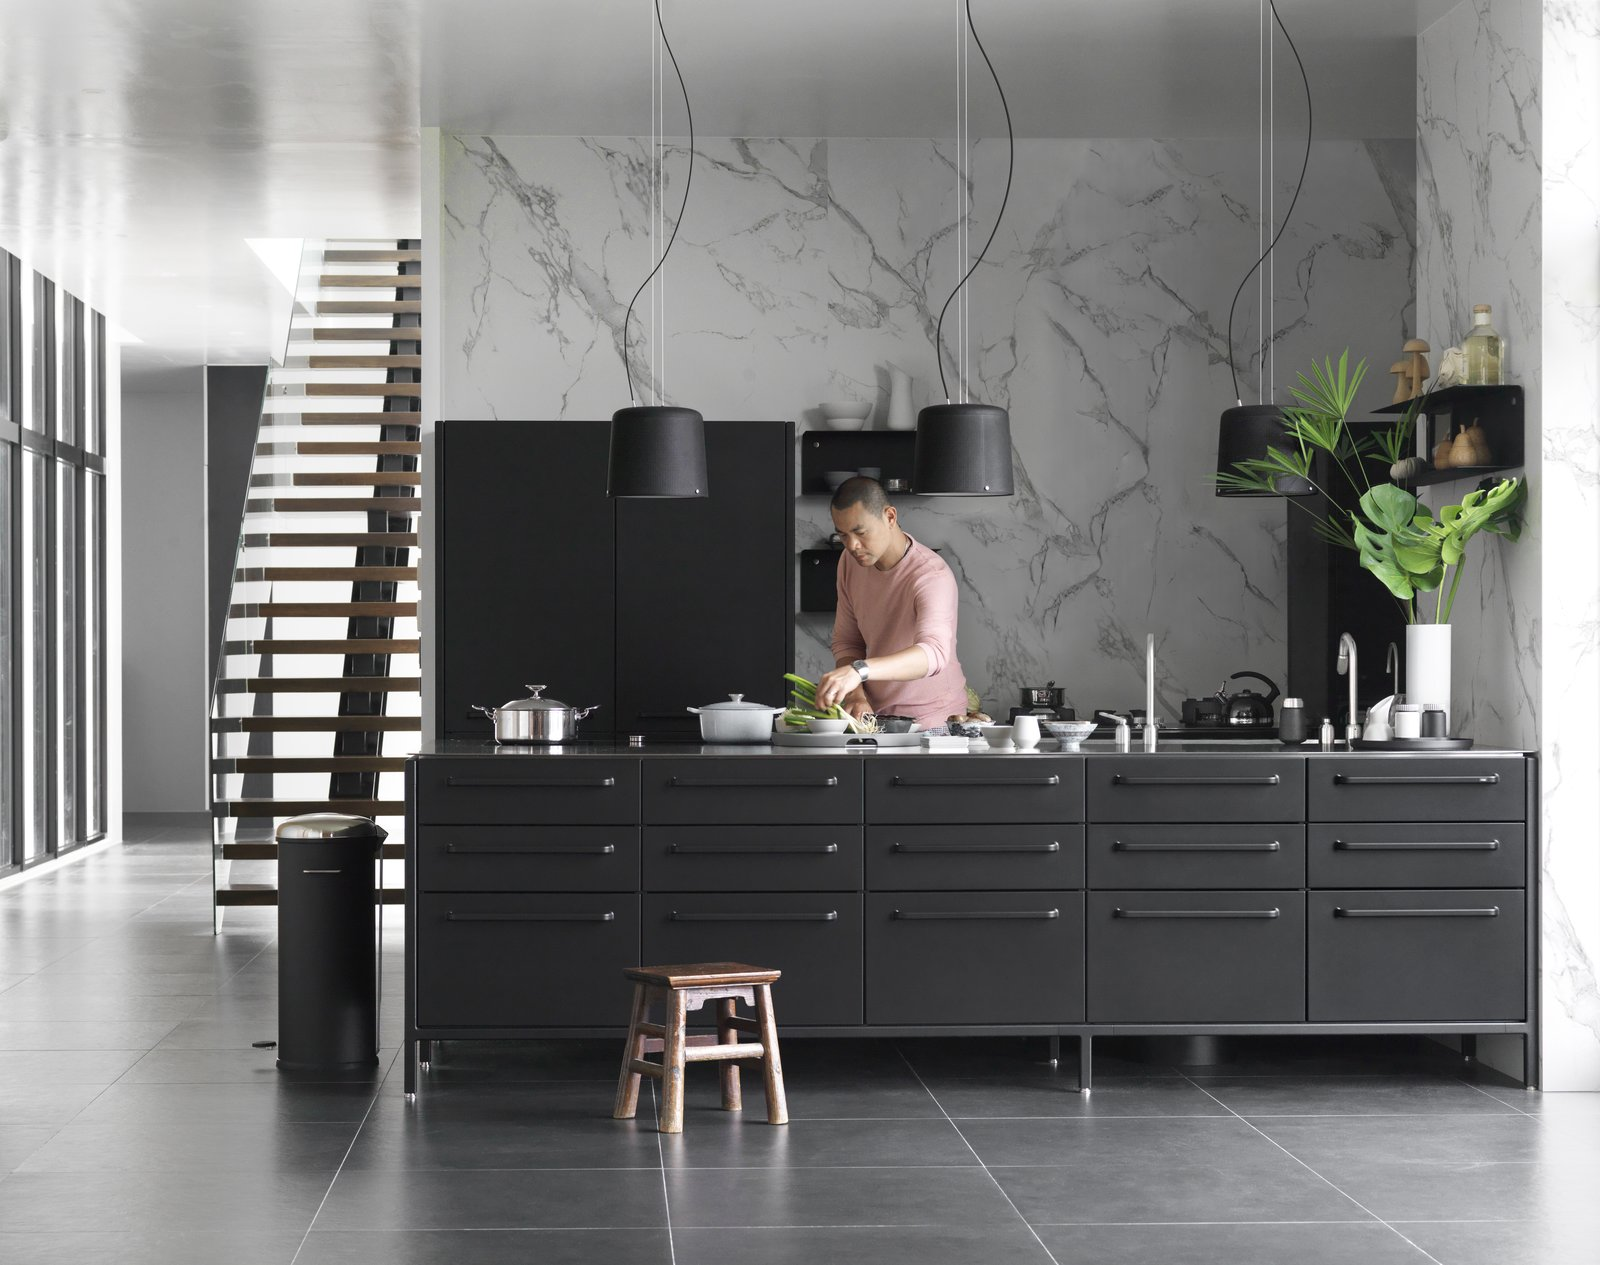 Kitchen, Marble, Metal, and Metal Two of chef André Chiang's restaurants have appeared on the annual World's 50 Best Restaurants list. So it makes sense that at his new home in Taiwan, which he largely designed himself, the kitchen takes center stage. To outfit it, André worked with Vipp, the maker of everything from the black steel island and stainless-steel countertops to the faucets, cabinets, shelves, pendant light fixtures—even the tea kettle and trash bin.  Dwell's Favorite Kitchen Metal Photos from Michelin-Starred Chef André Chiang's New Home in Rural Taiwan